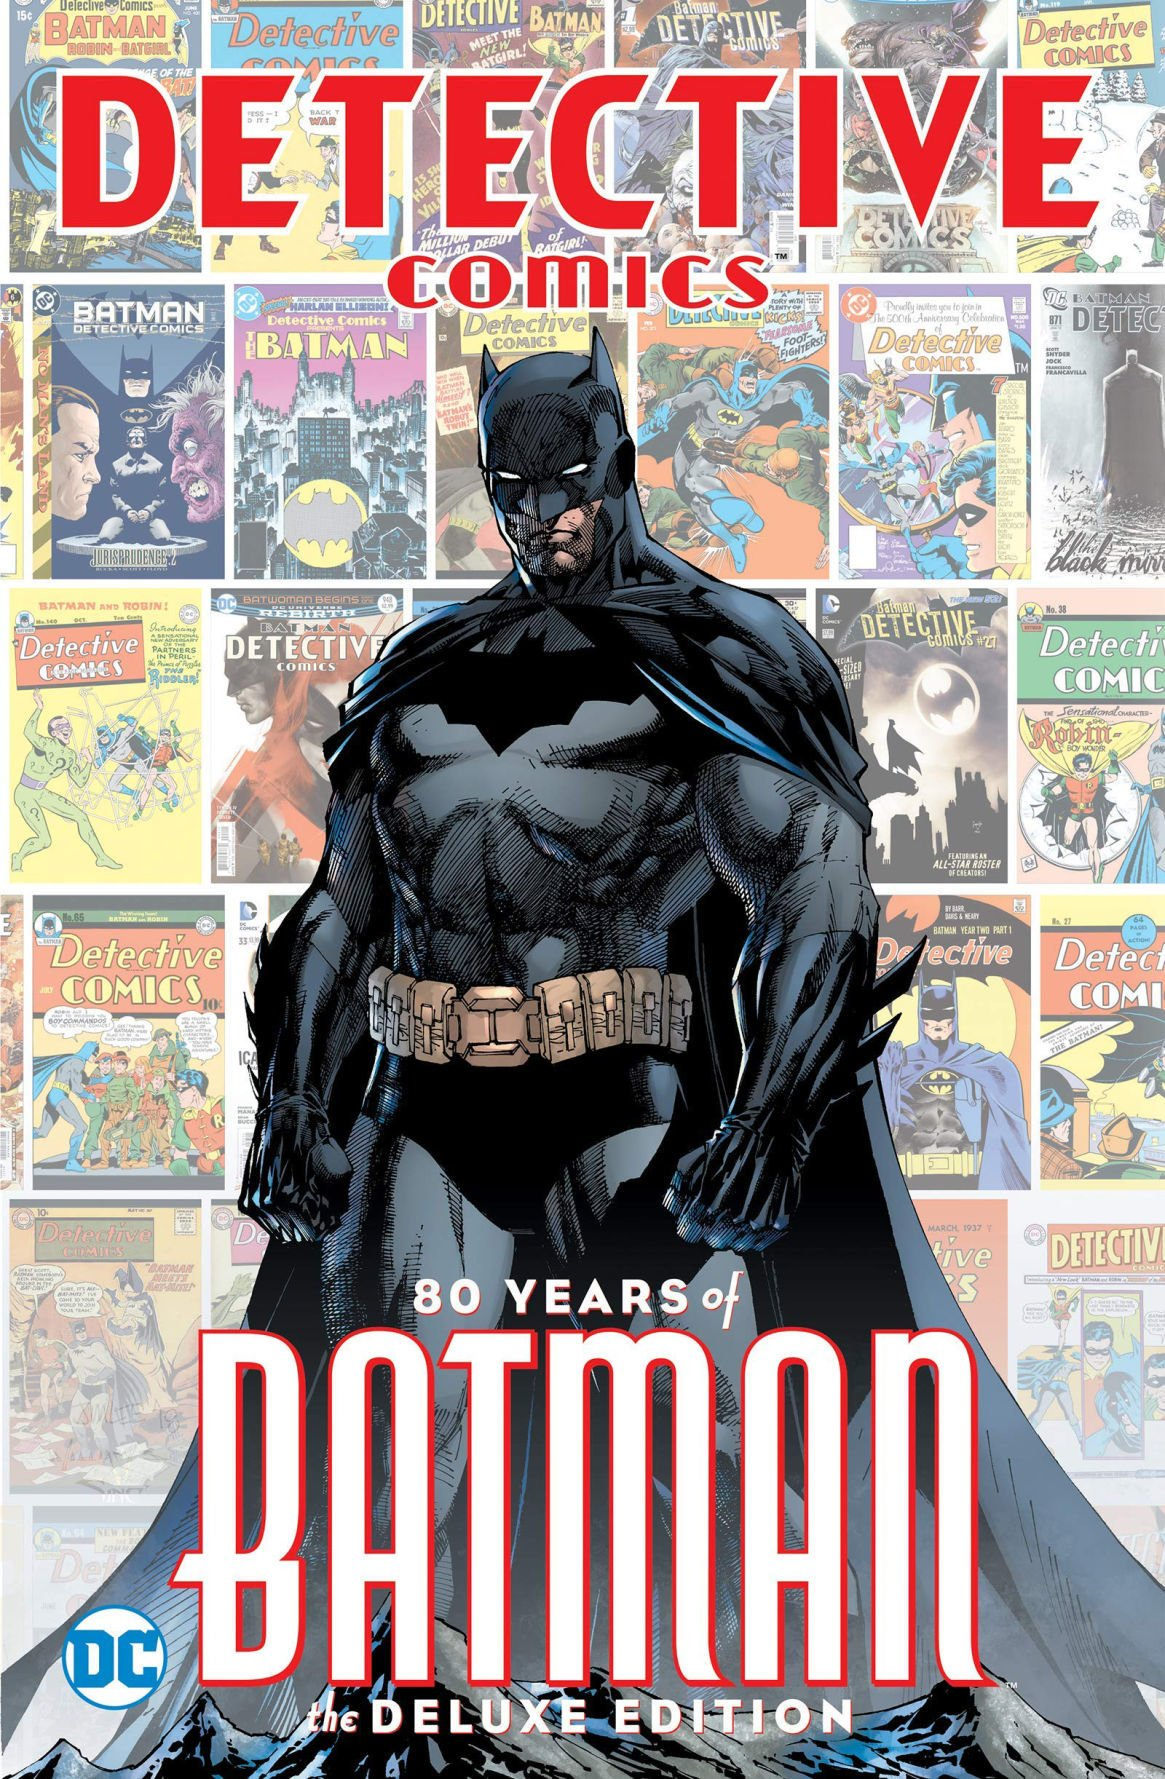 """Detective Comics: 80 Years of Batman (Deluxe Edition)"""